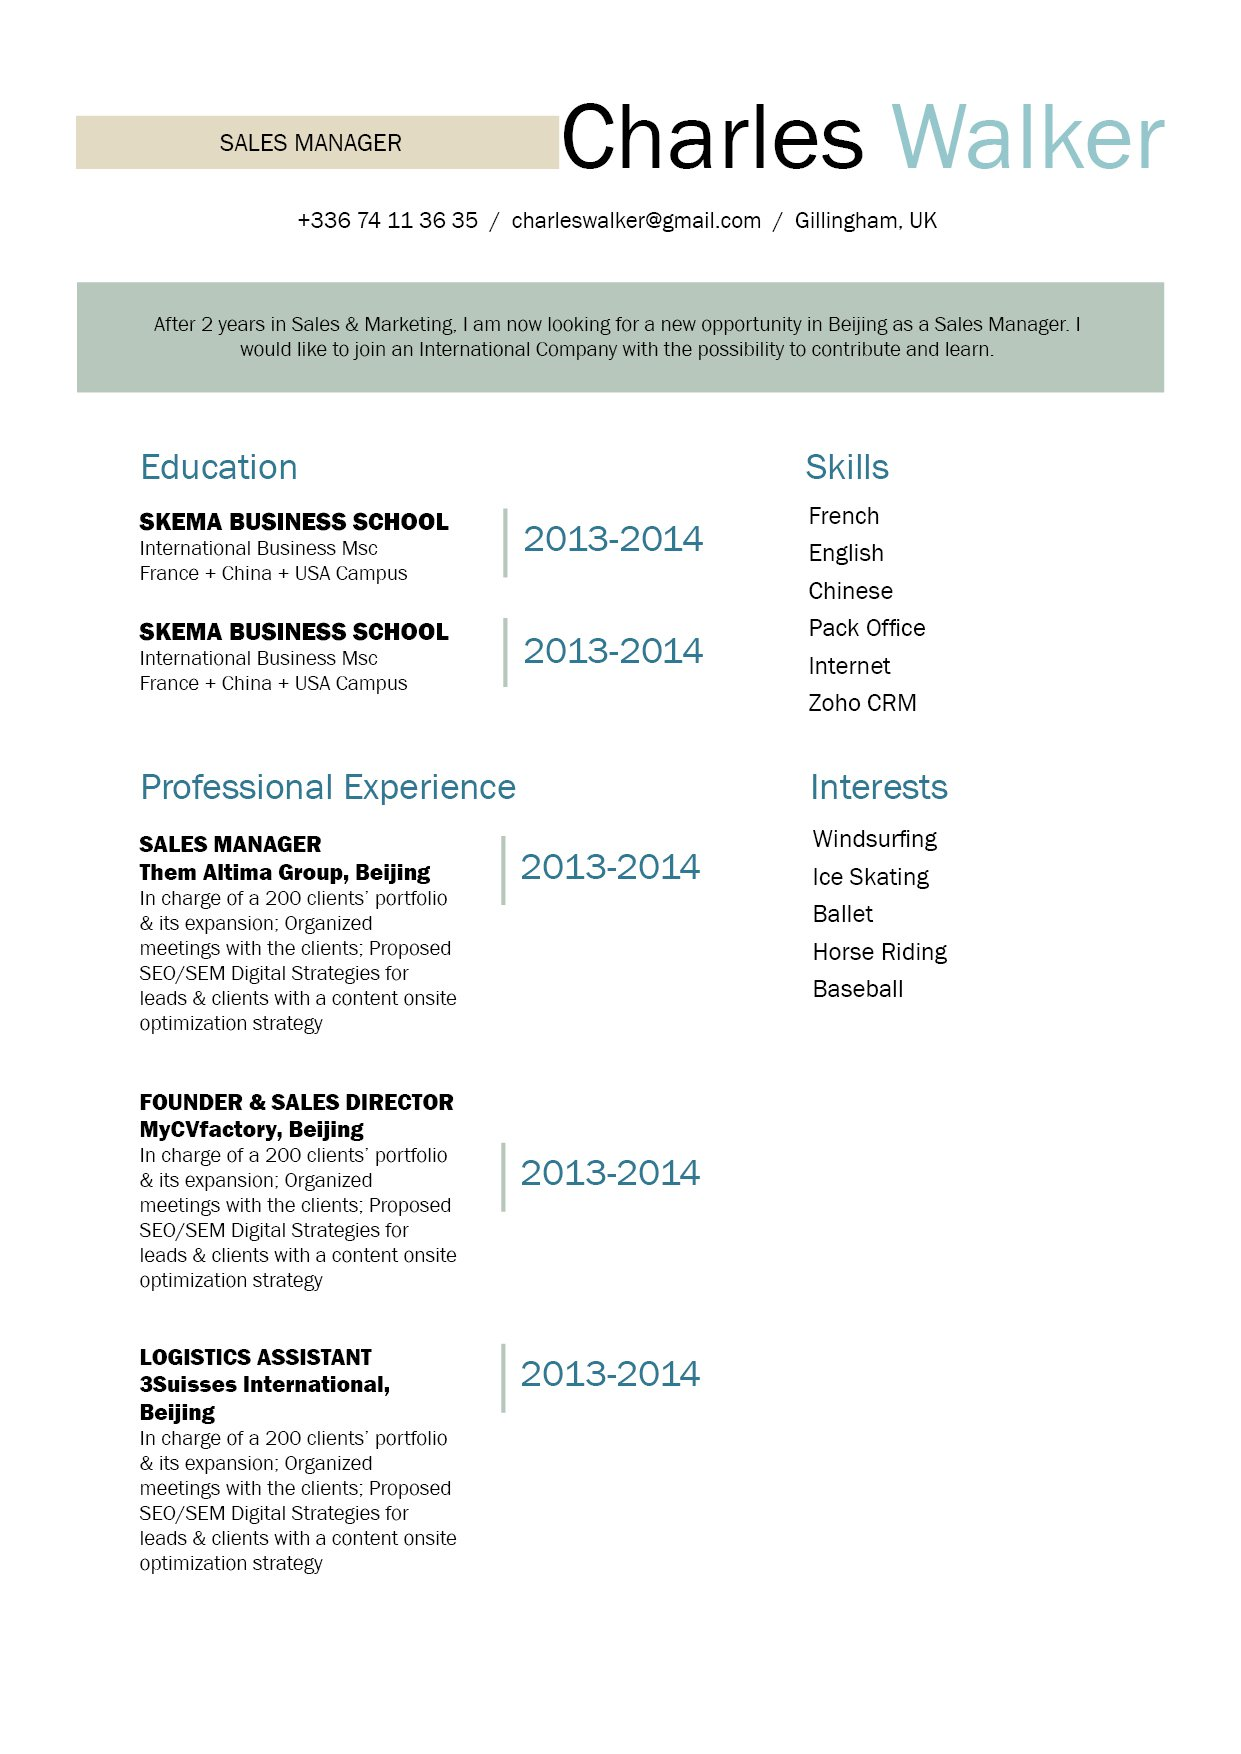 This simple resume template has format crafter perfectly for professionals!